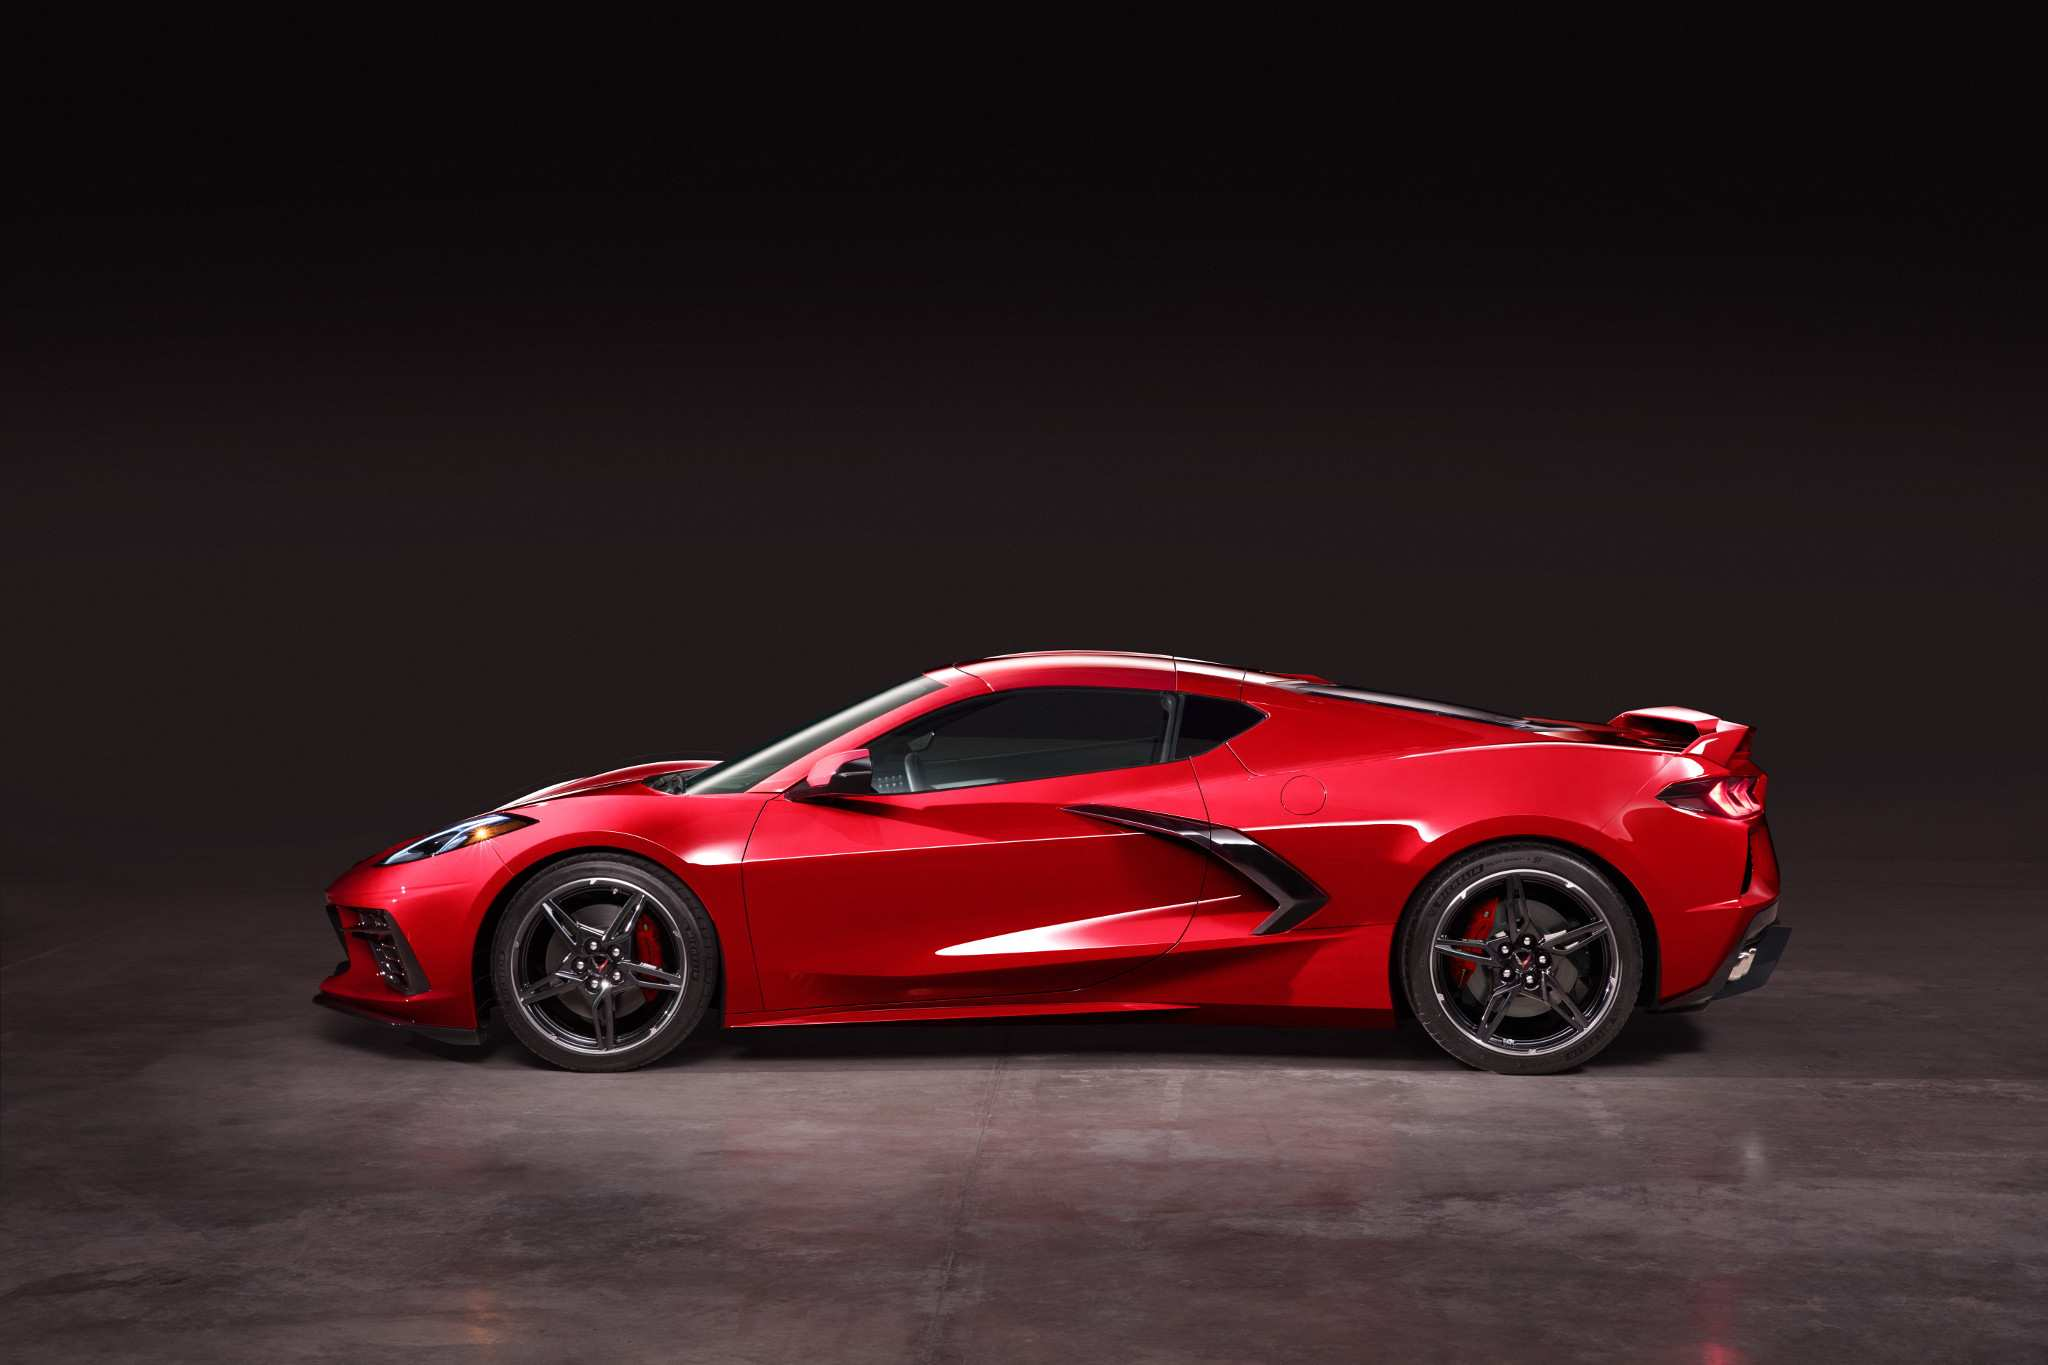 76 Concept of 2020 Chevrolet Corvette Zr1 Release for 2020 Chevrolet Corvette Zr1